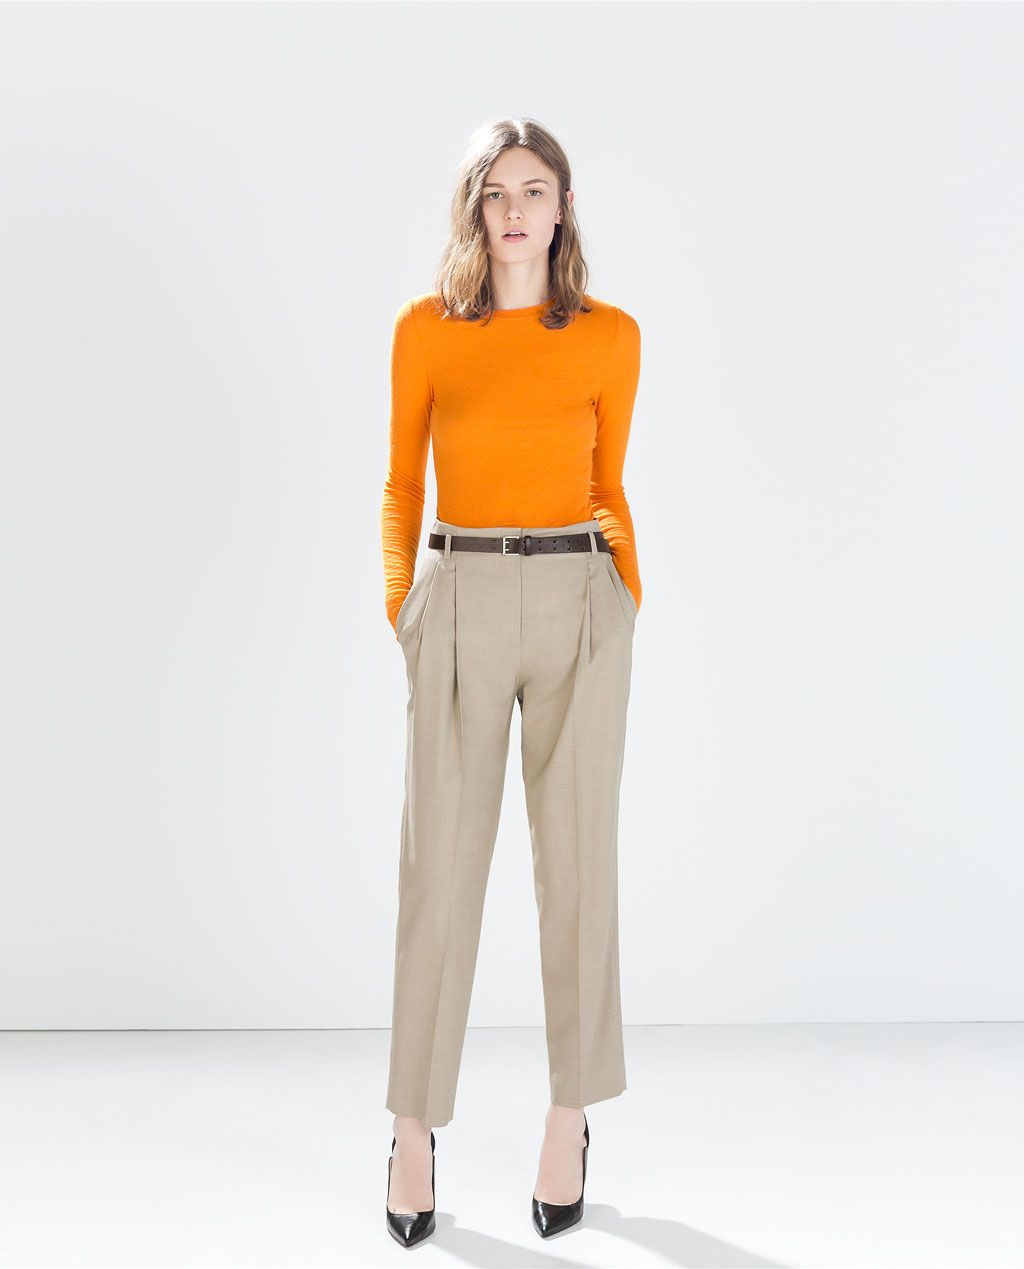 Zara - Woman - High Waisted Trousers With Belt  Bussines I Mean  Pantalones, Ropa Y Moda-4596